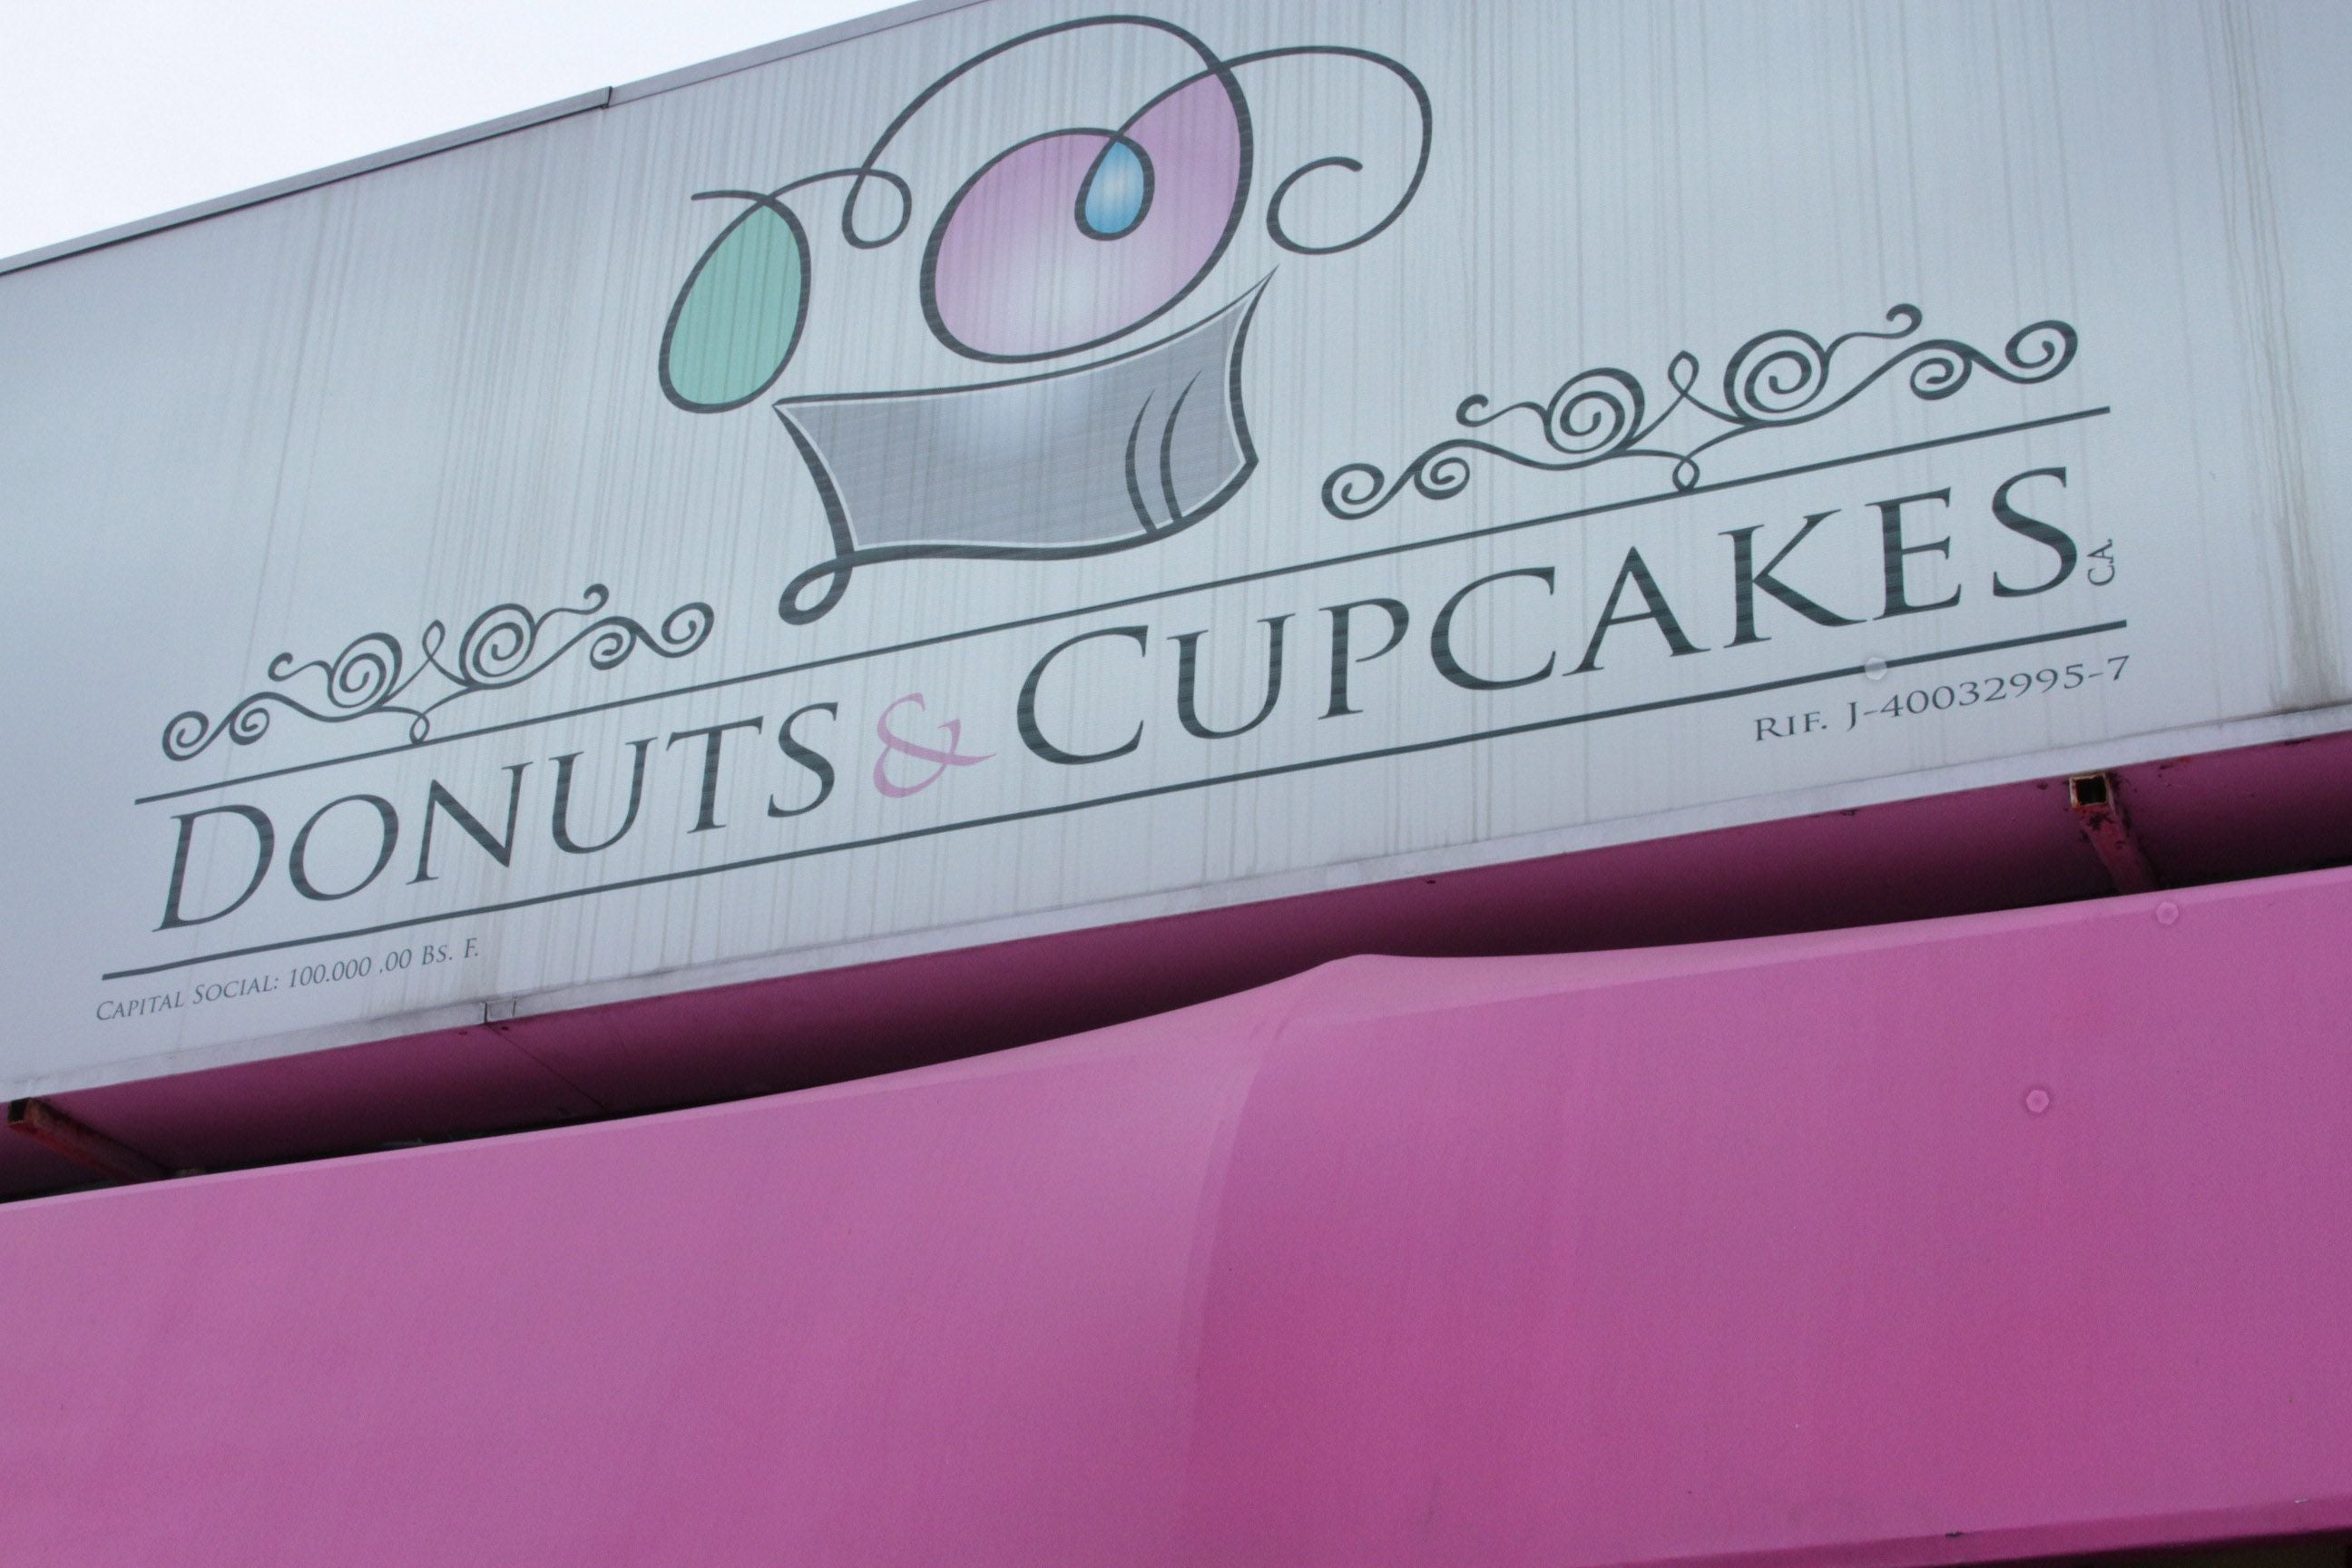 Signage in Donuts y Cupcakes